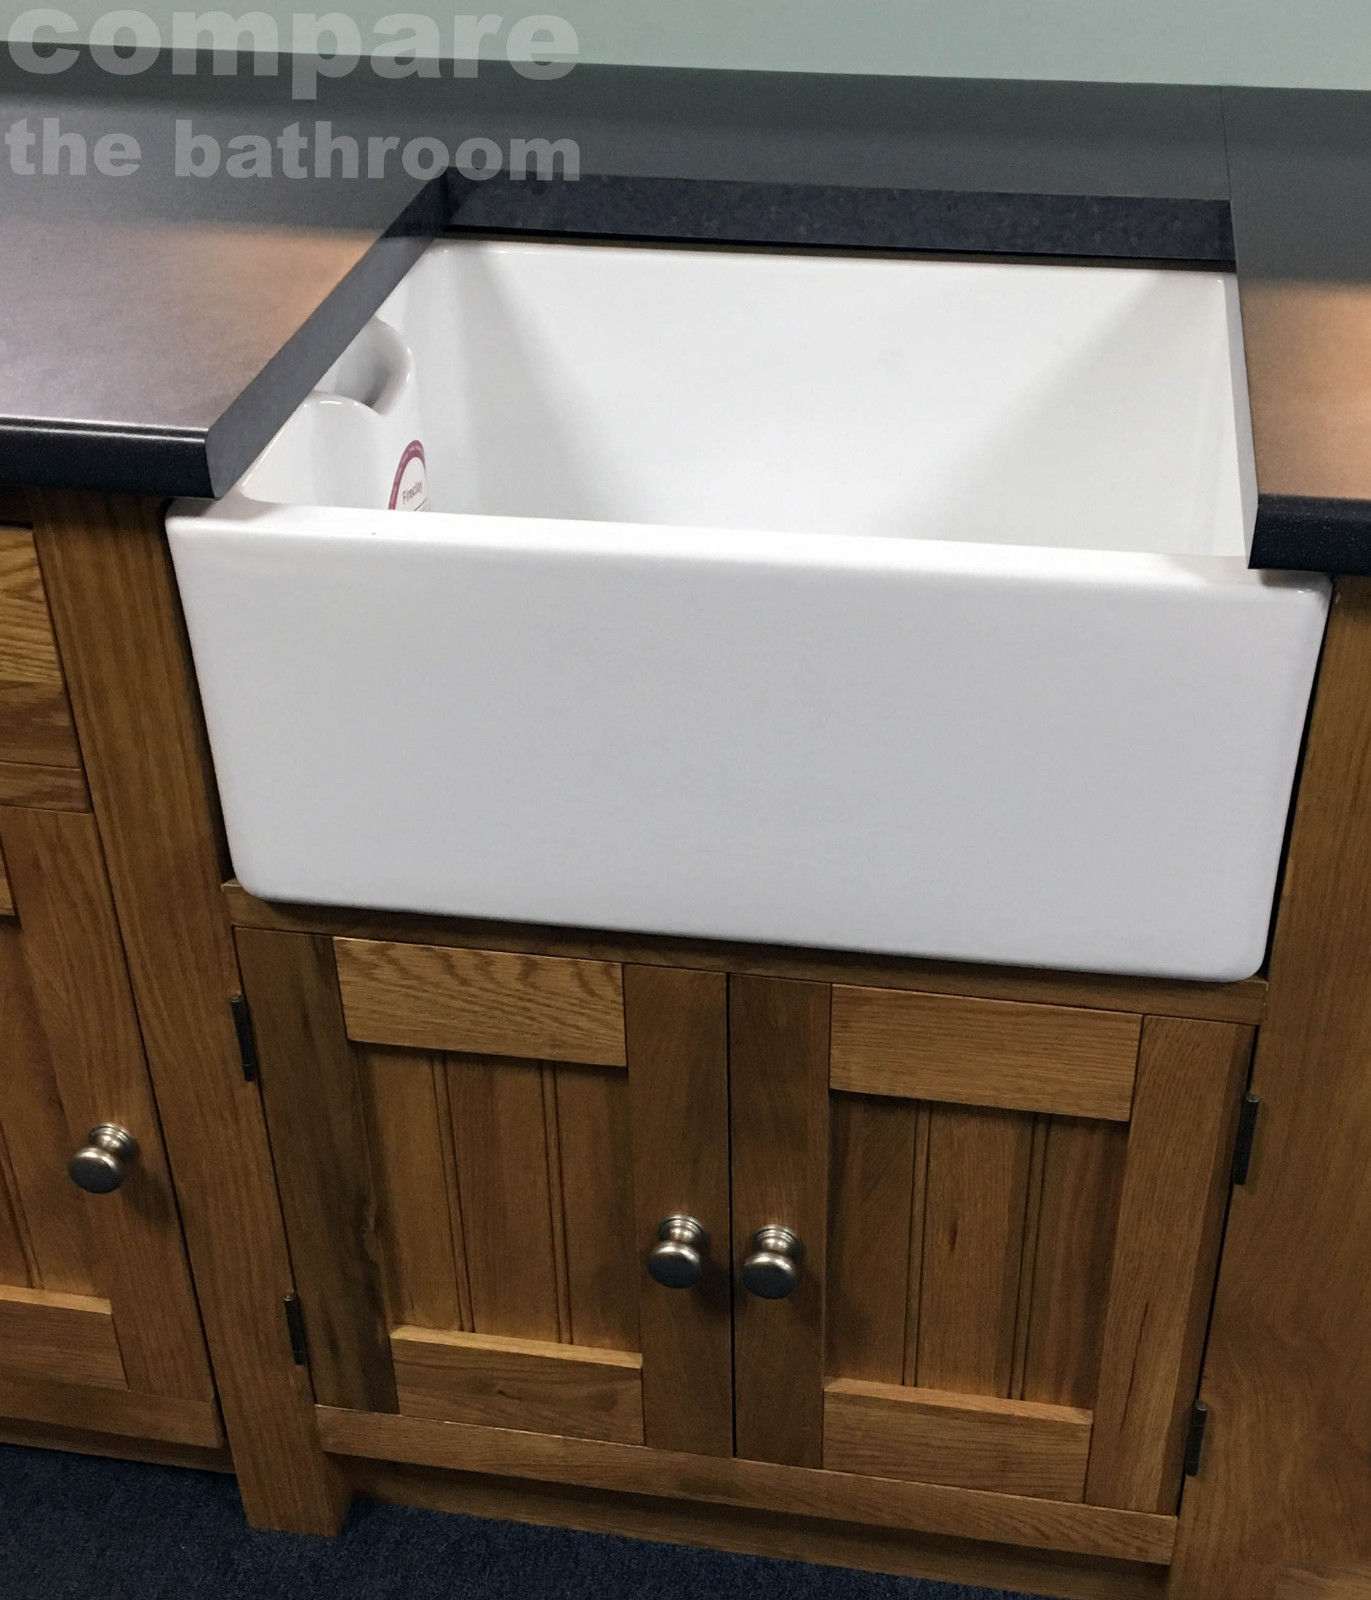 Rak belfast kitchen sink fireclay with waste ceramic white for Rak kitchen set